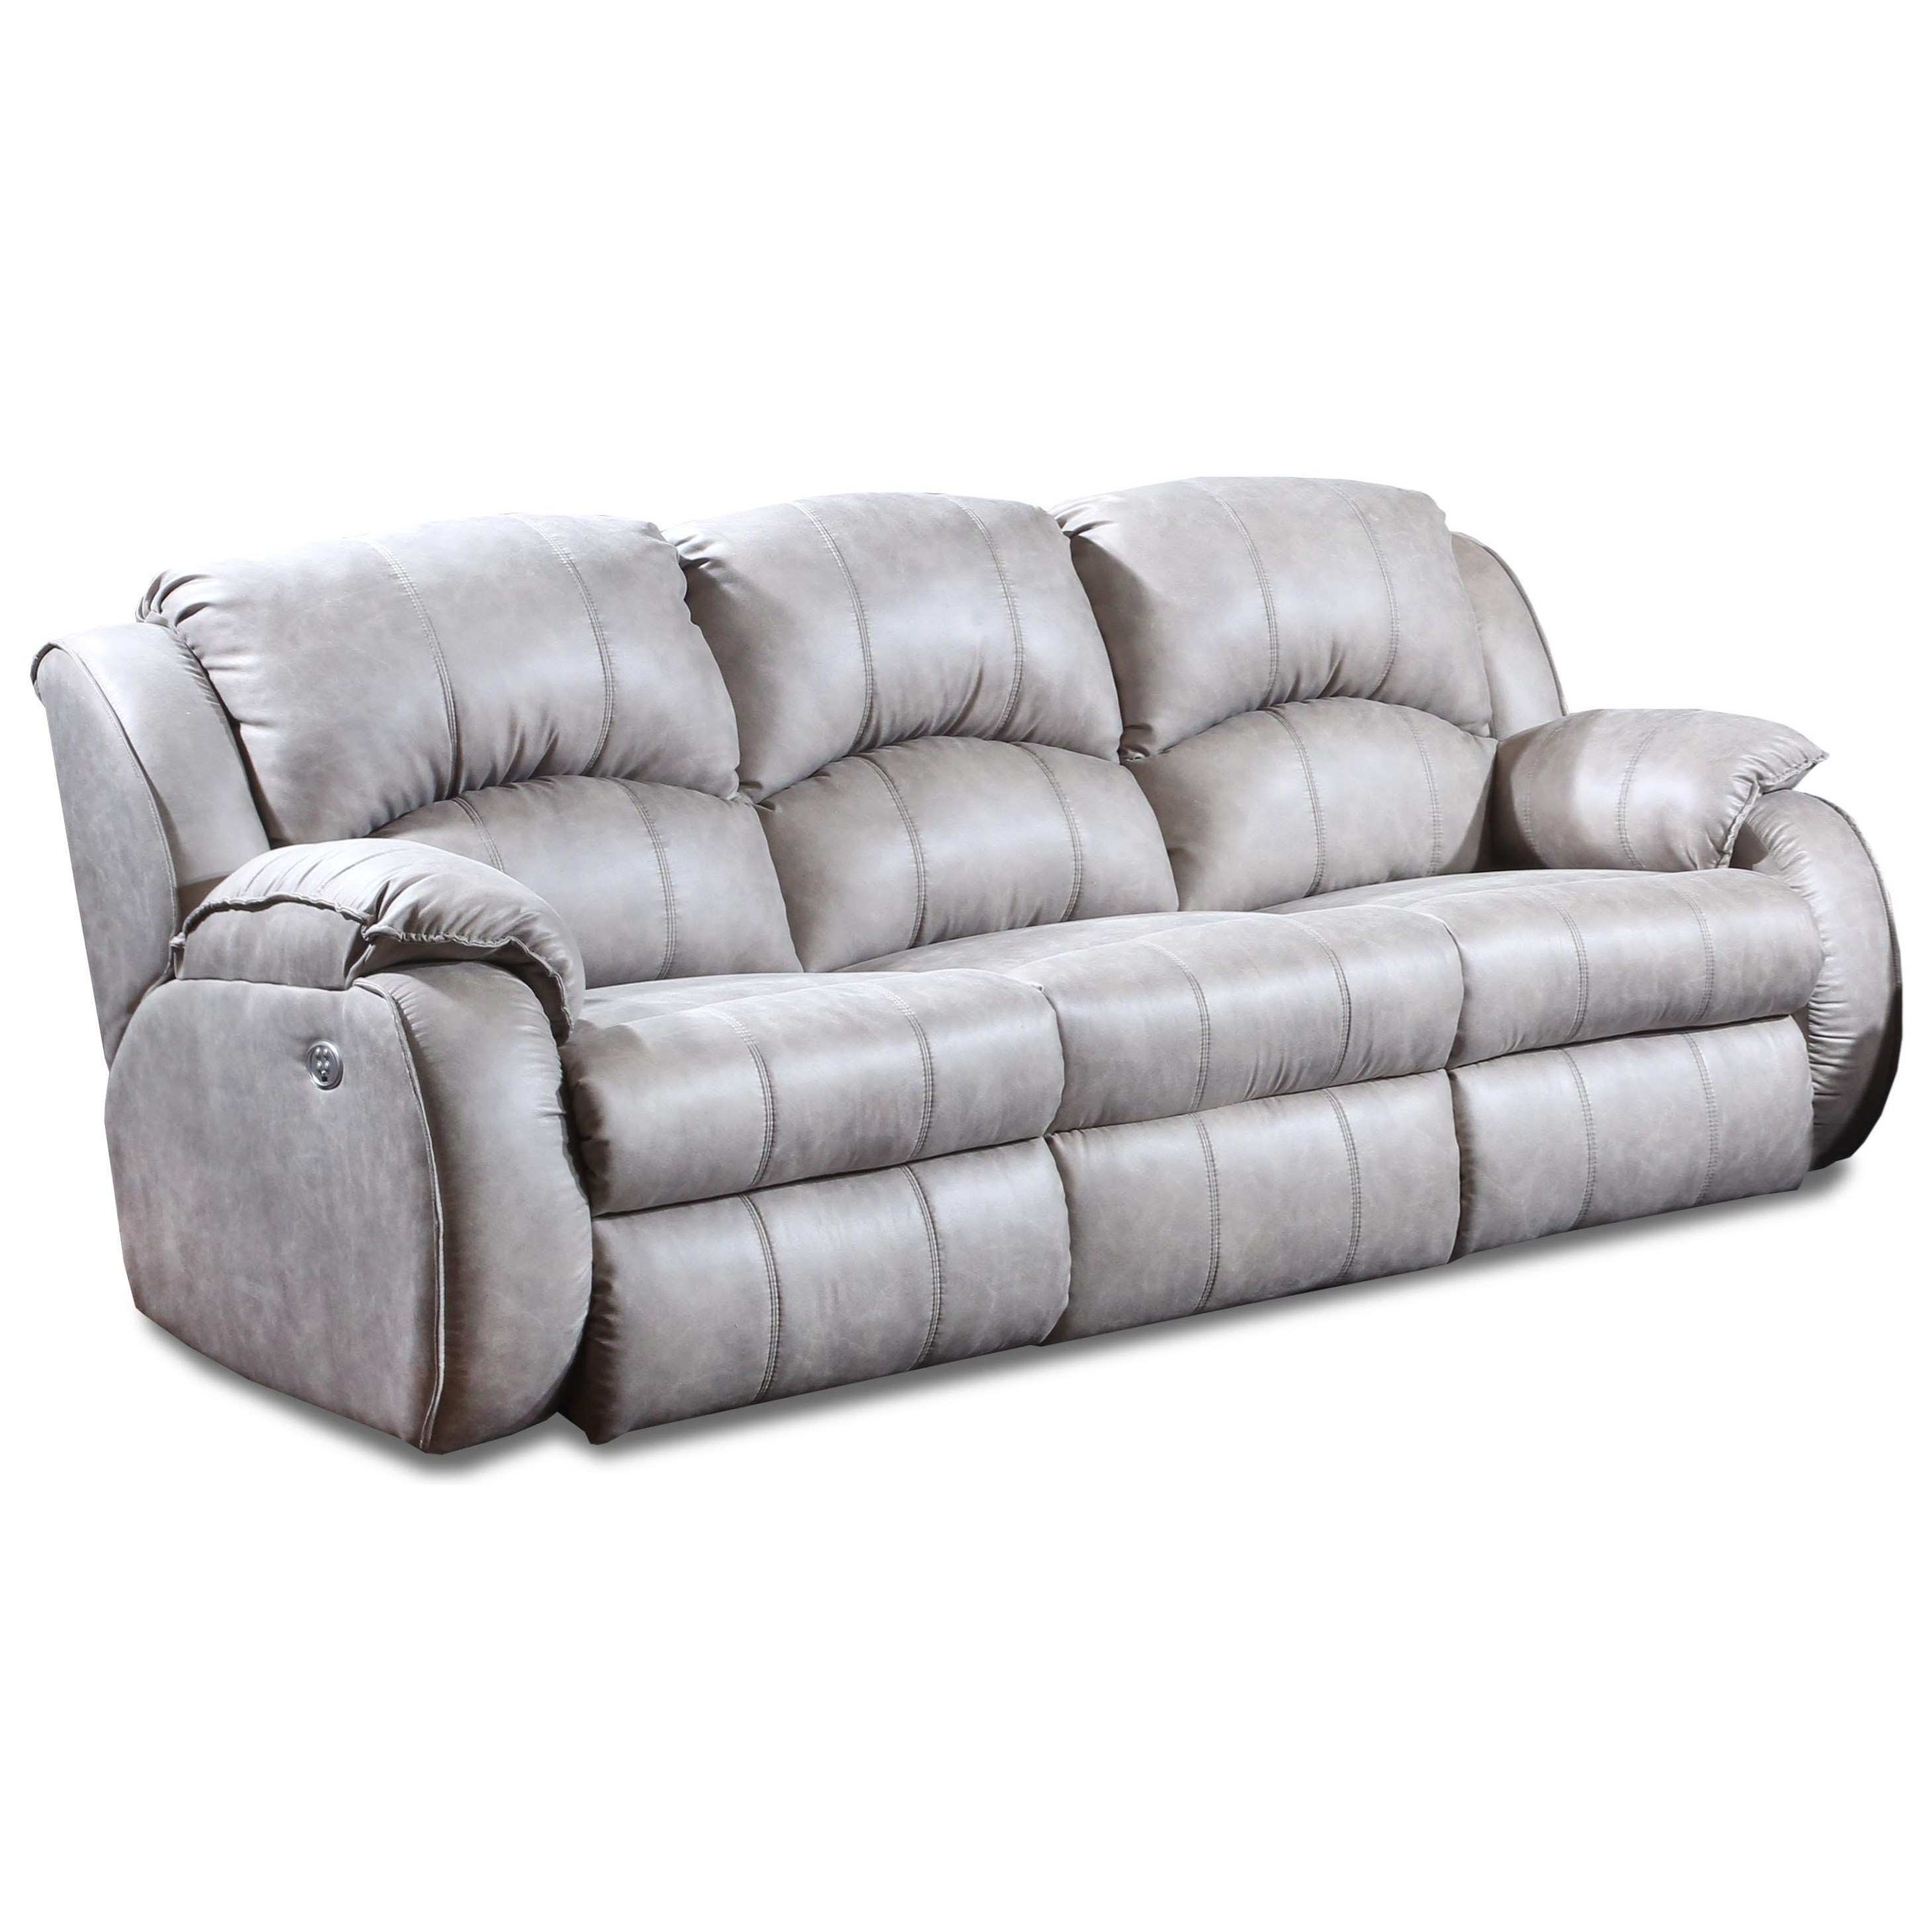 Cagney Power Headrest Reclining Sofa by Southern Motion at Bullard Furniture